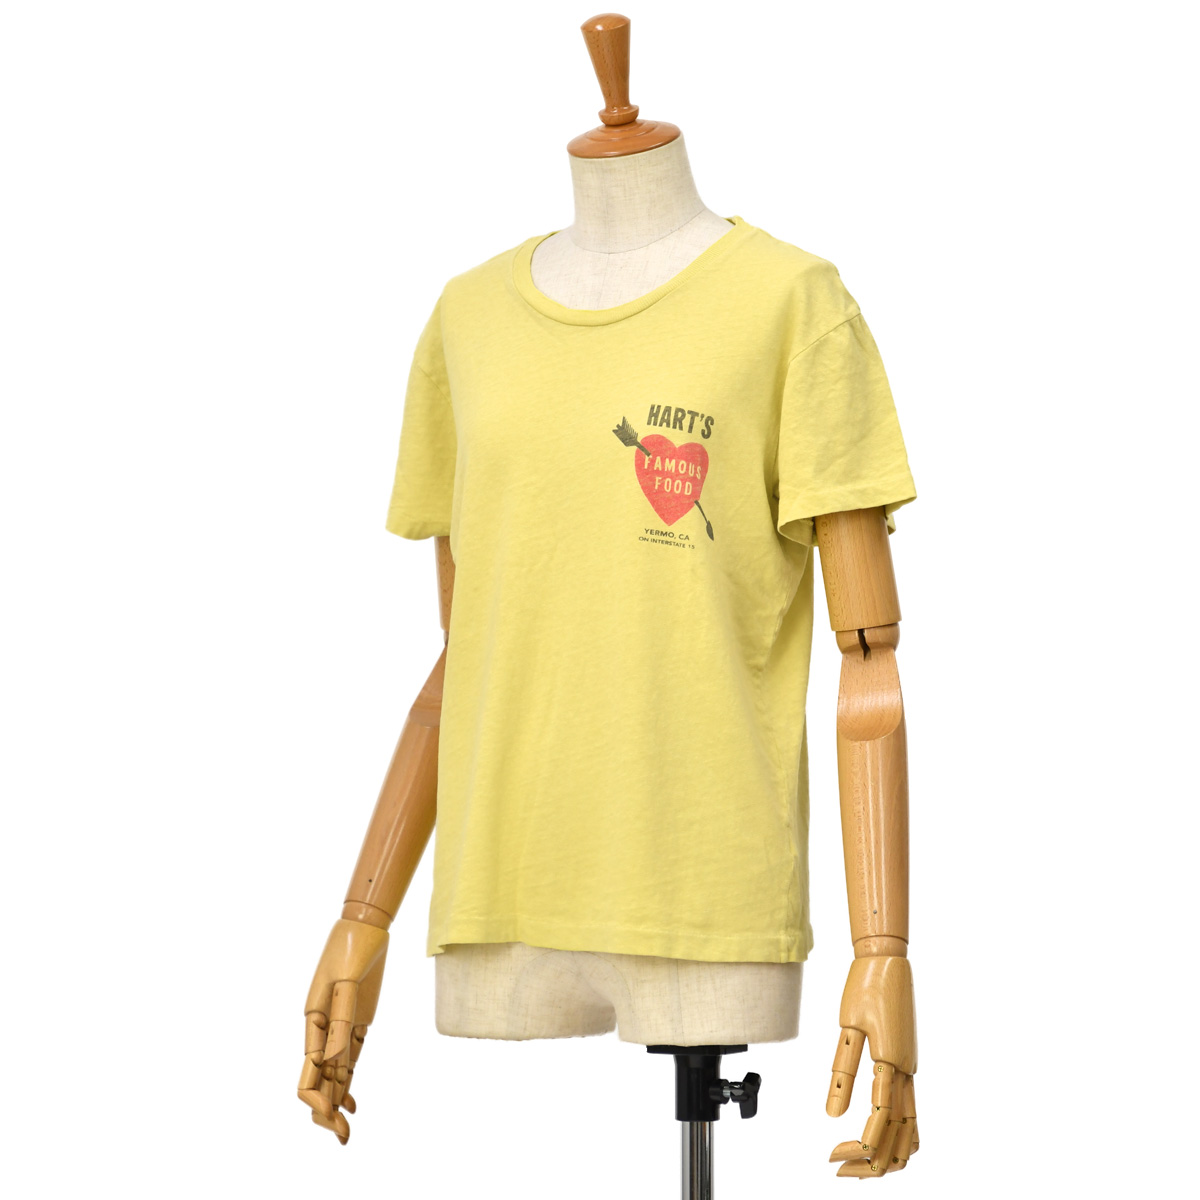 RE/DONE【リダン】半袖カットソー 024-2WLSTE1 FADEDLEMON 70S LOOSE TEE HARTS コットン イエロー